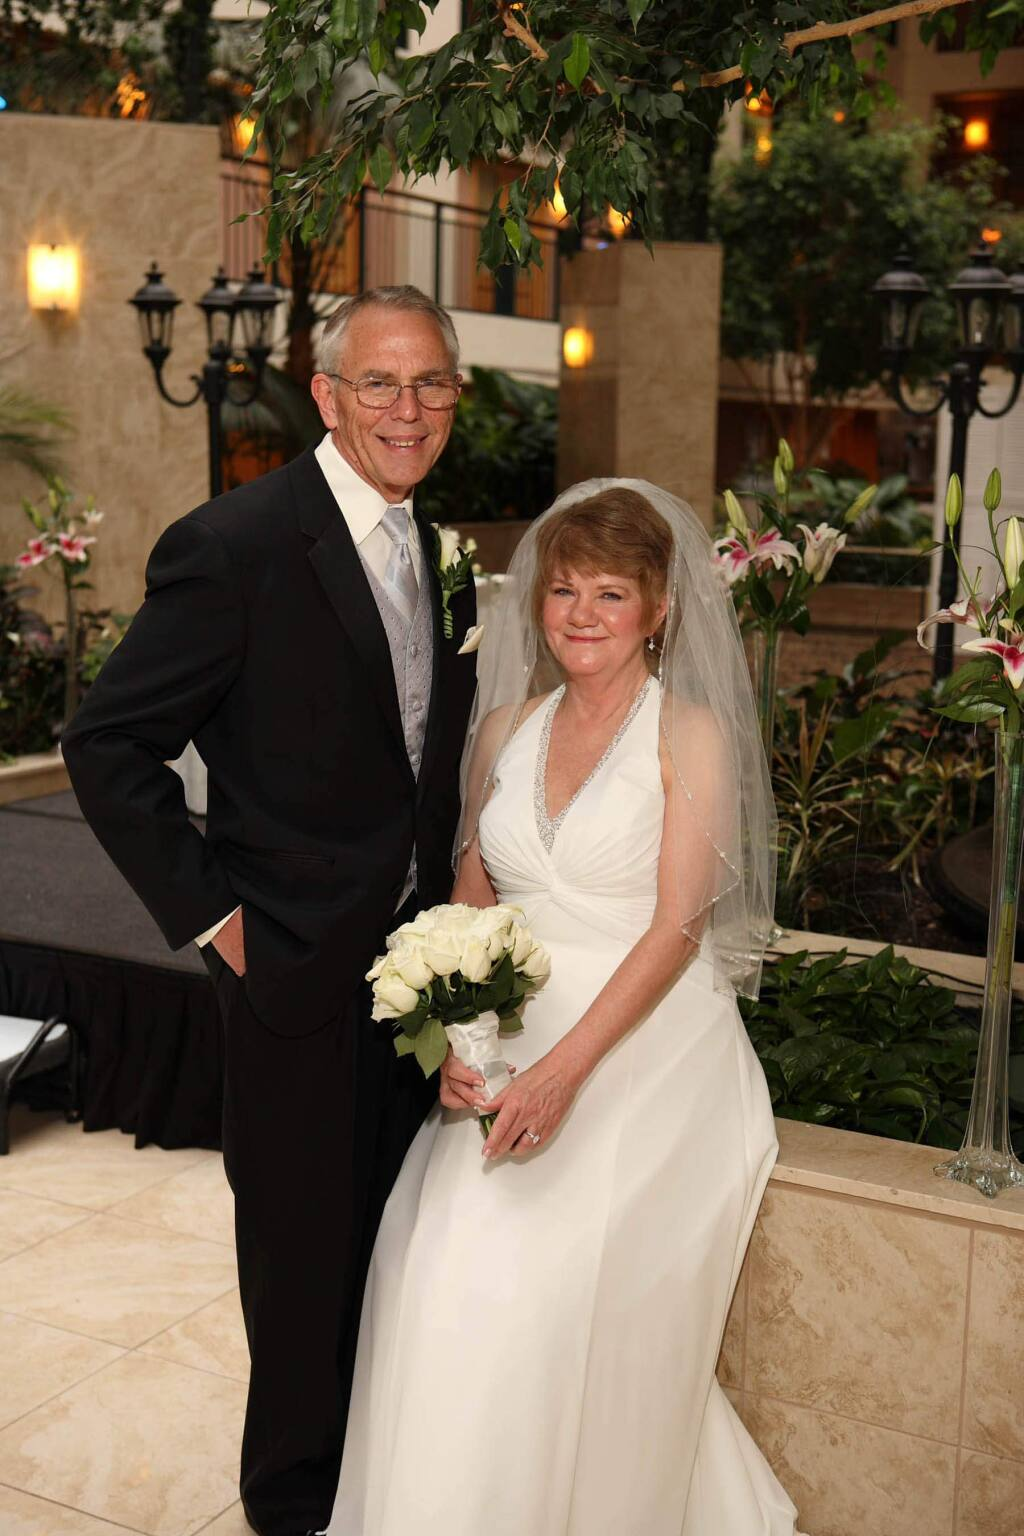 Cindy Jacobs, a retired therapist, was a month shy of 60 when she got married for the first time to Kerry, a widower. They have been married 10 years and live in Healdsburg. (Cindy Jacobs)